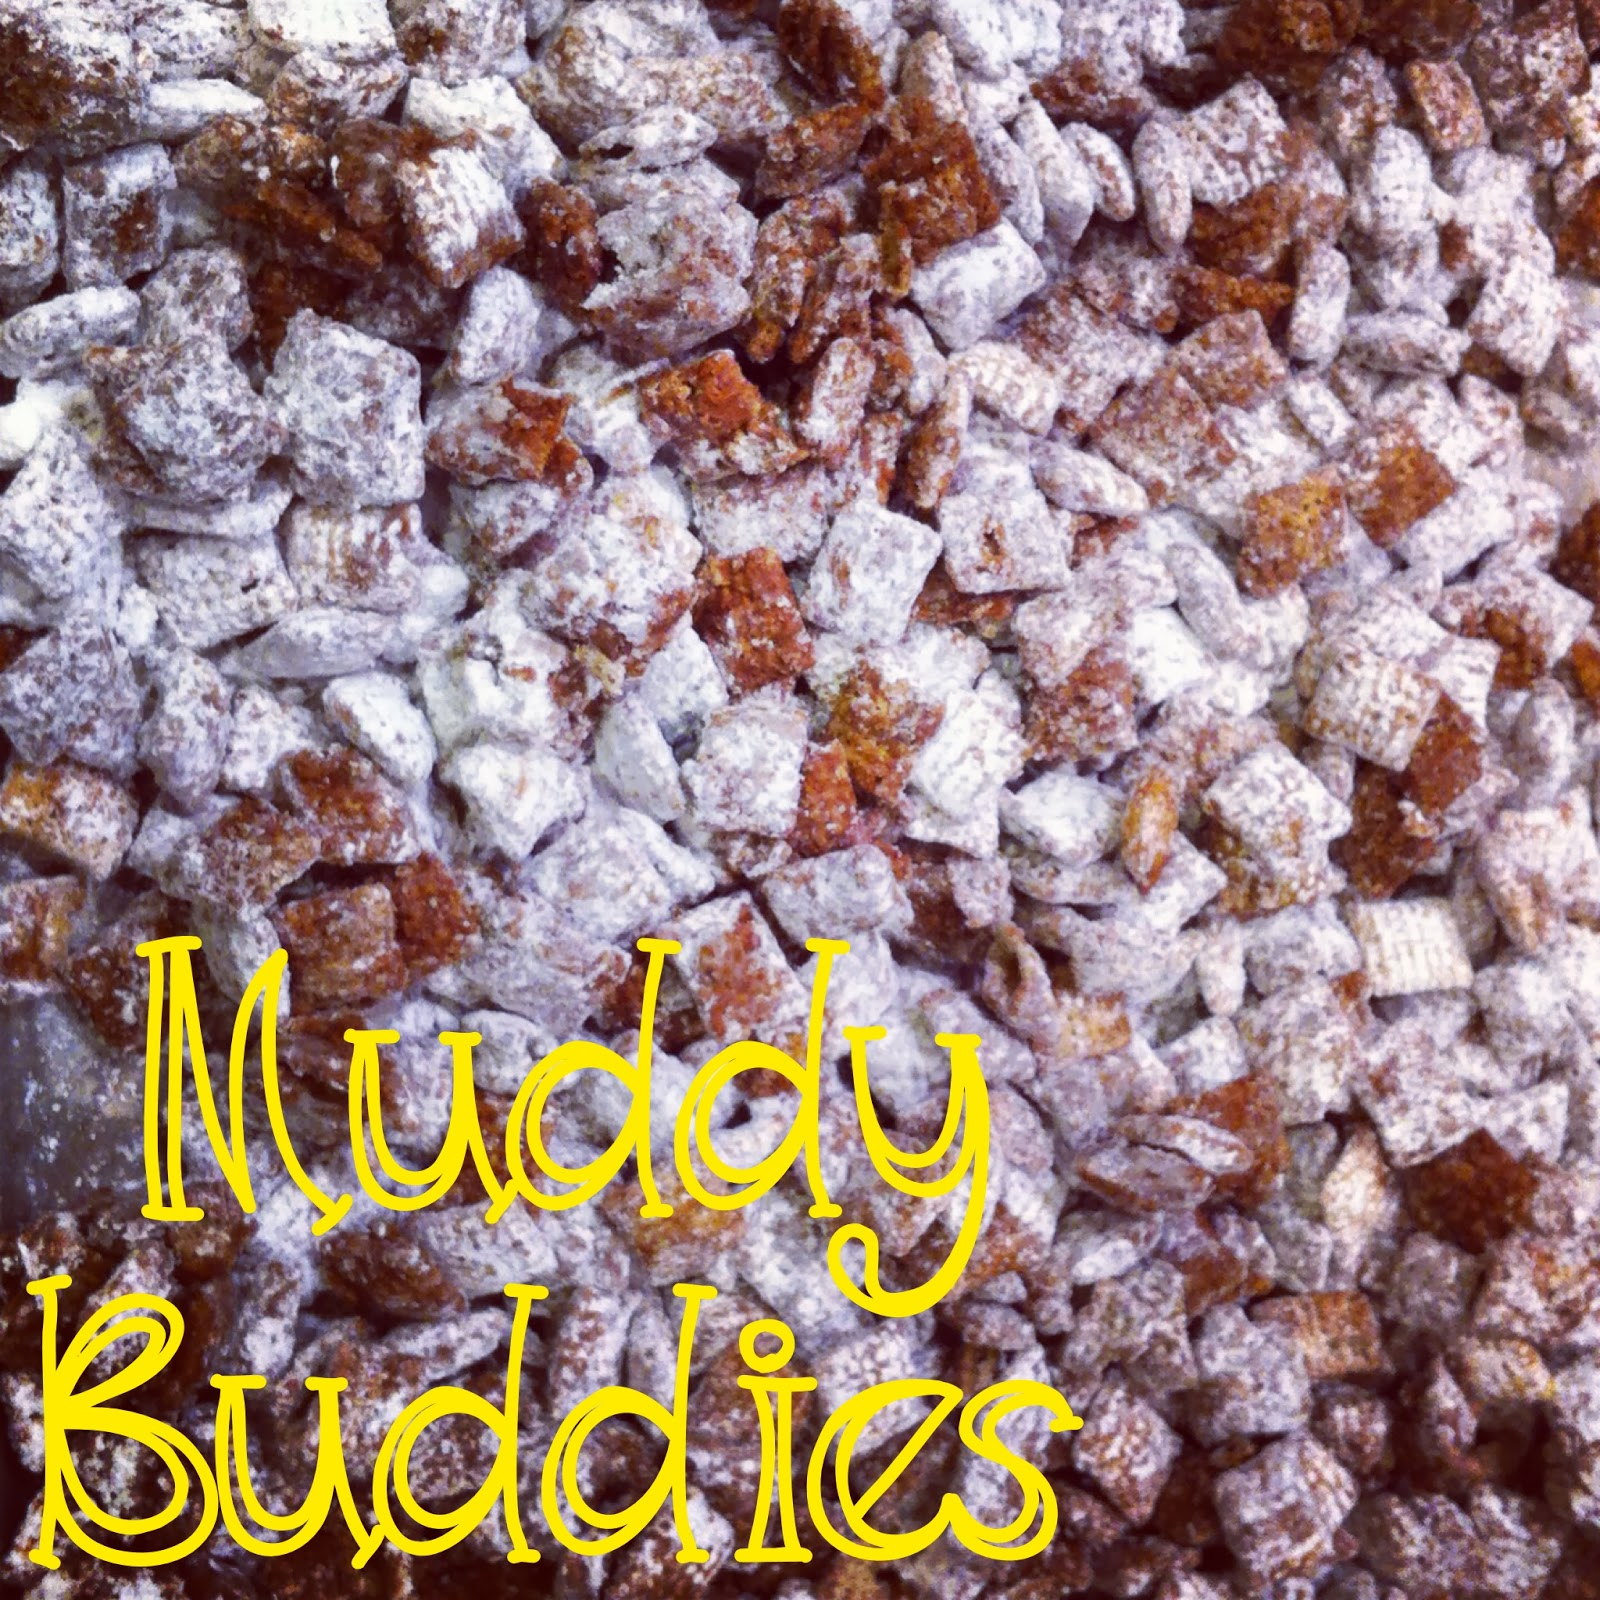 ... Book: Muddy Buddies aka Gluten Free Chocolate Peanut Butter Chex Mix